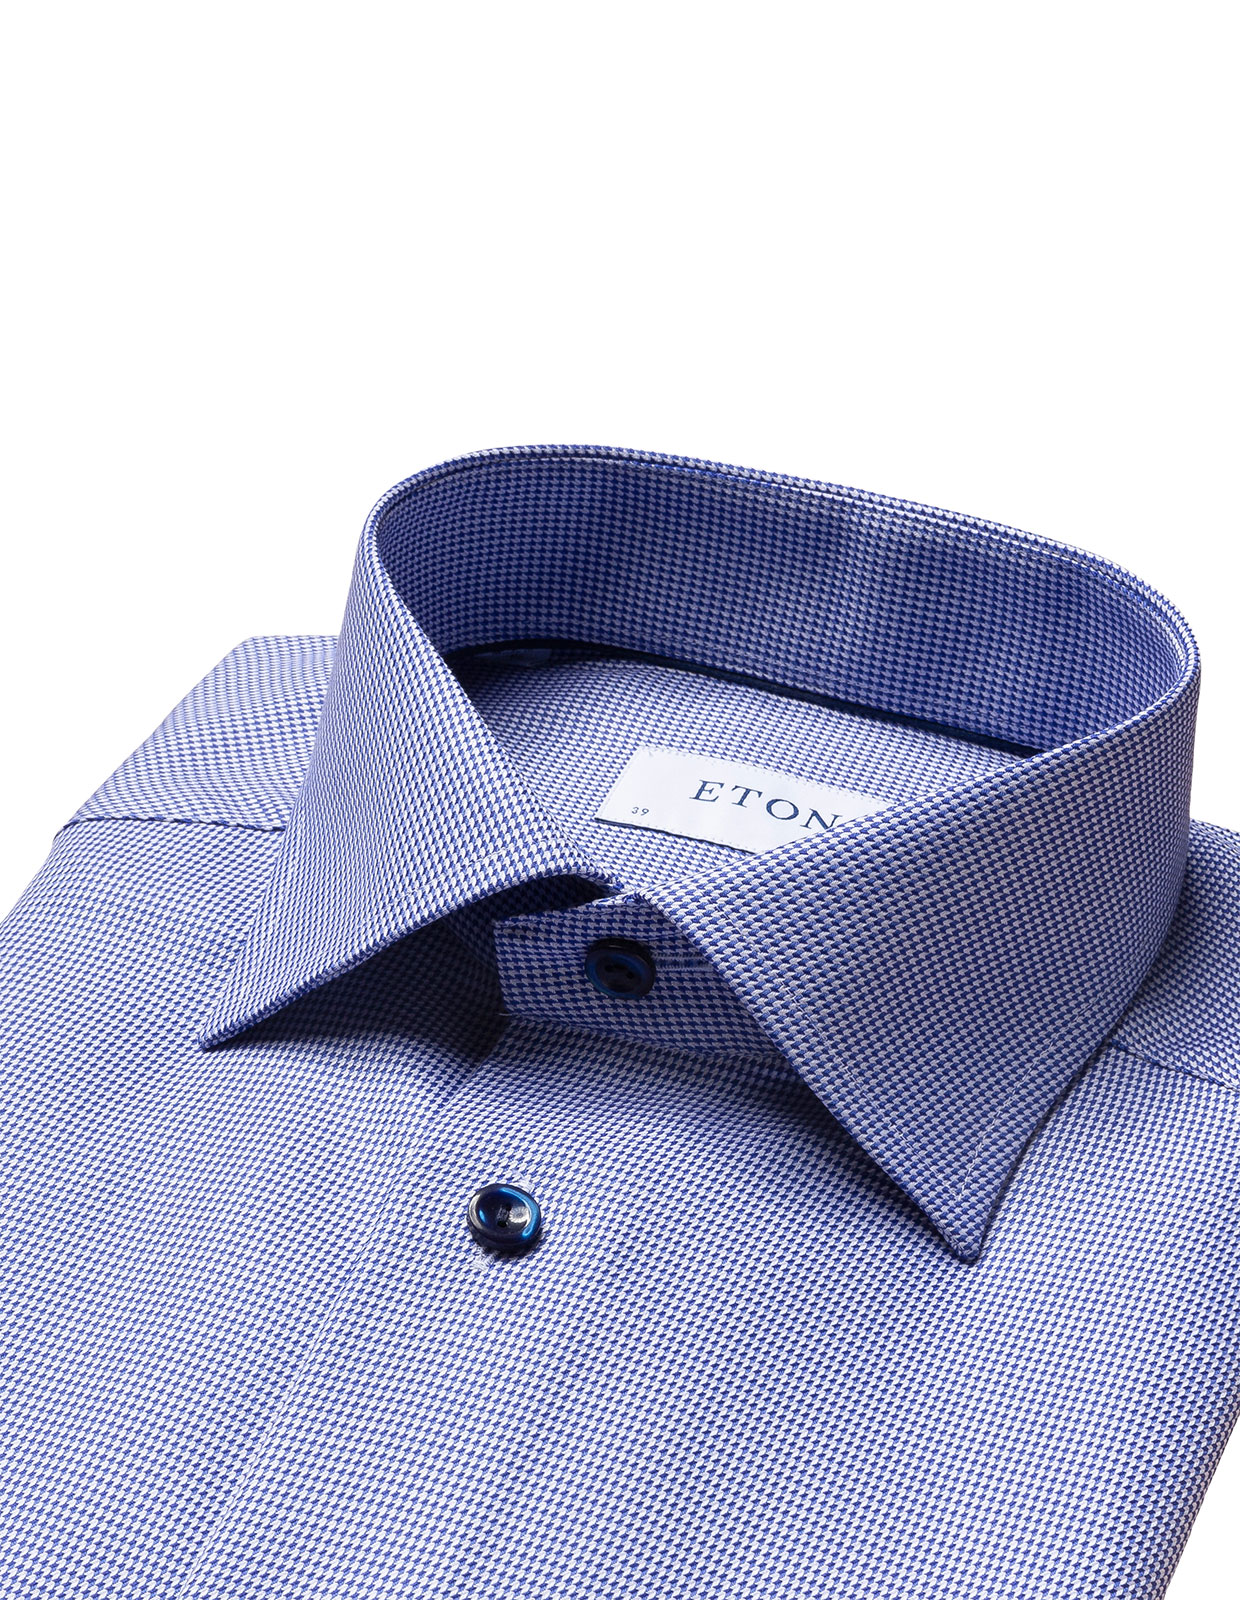 Slim Fit Twill Shirt Contrast Buttons Blue Stl 39